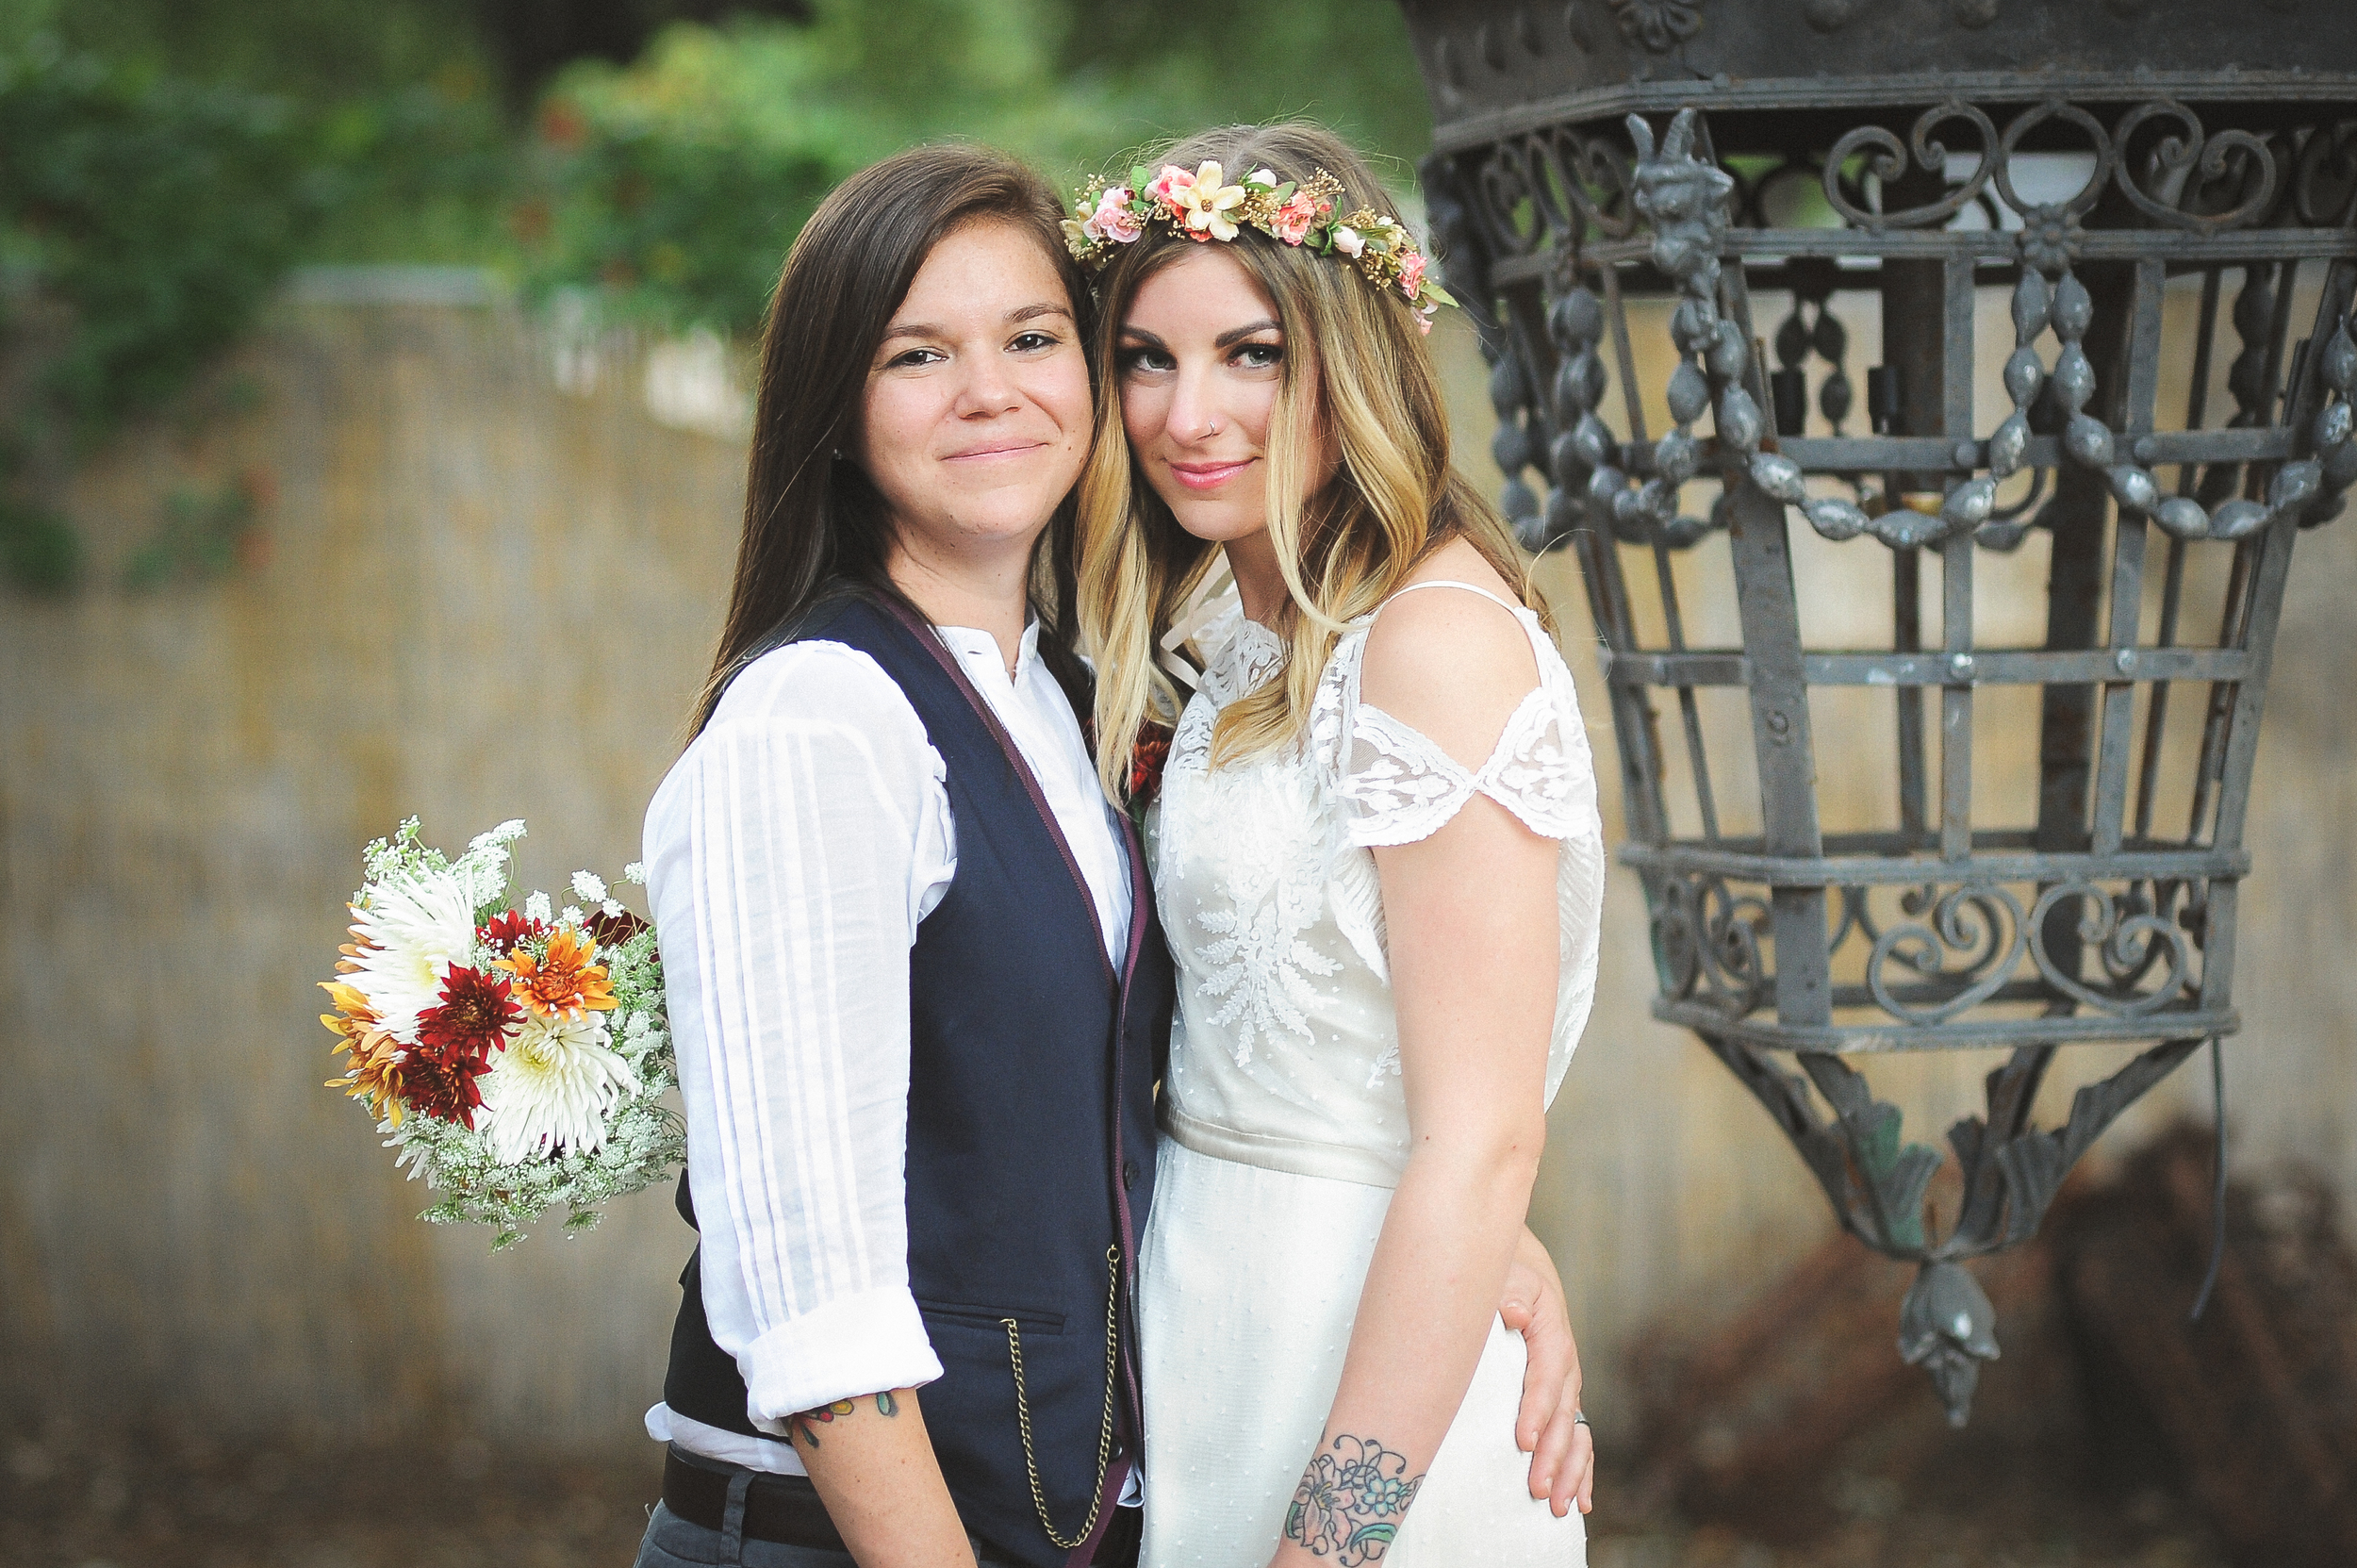 In 2014, I photographed Jackie + Laura's Wedding at VUKA